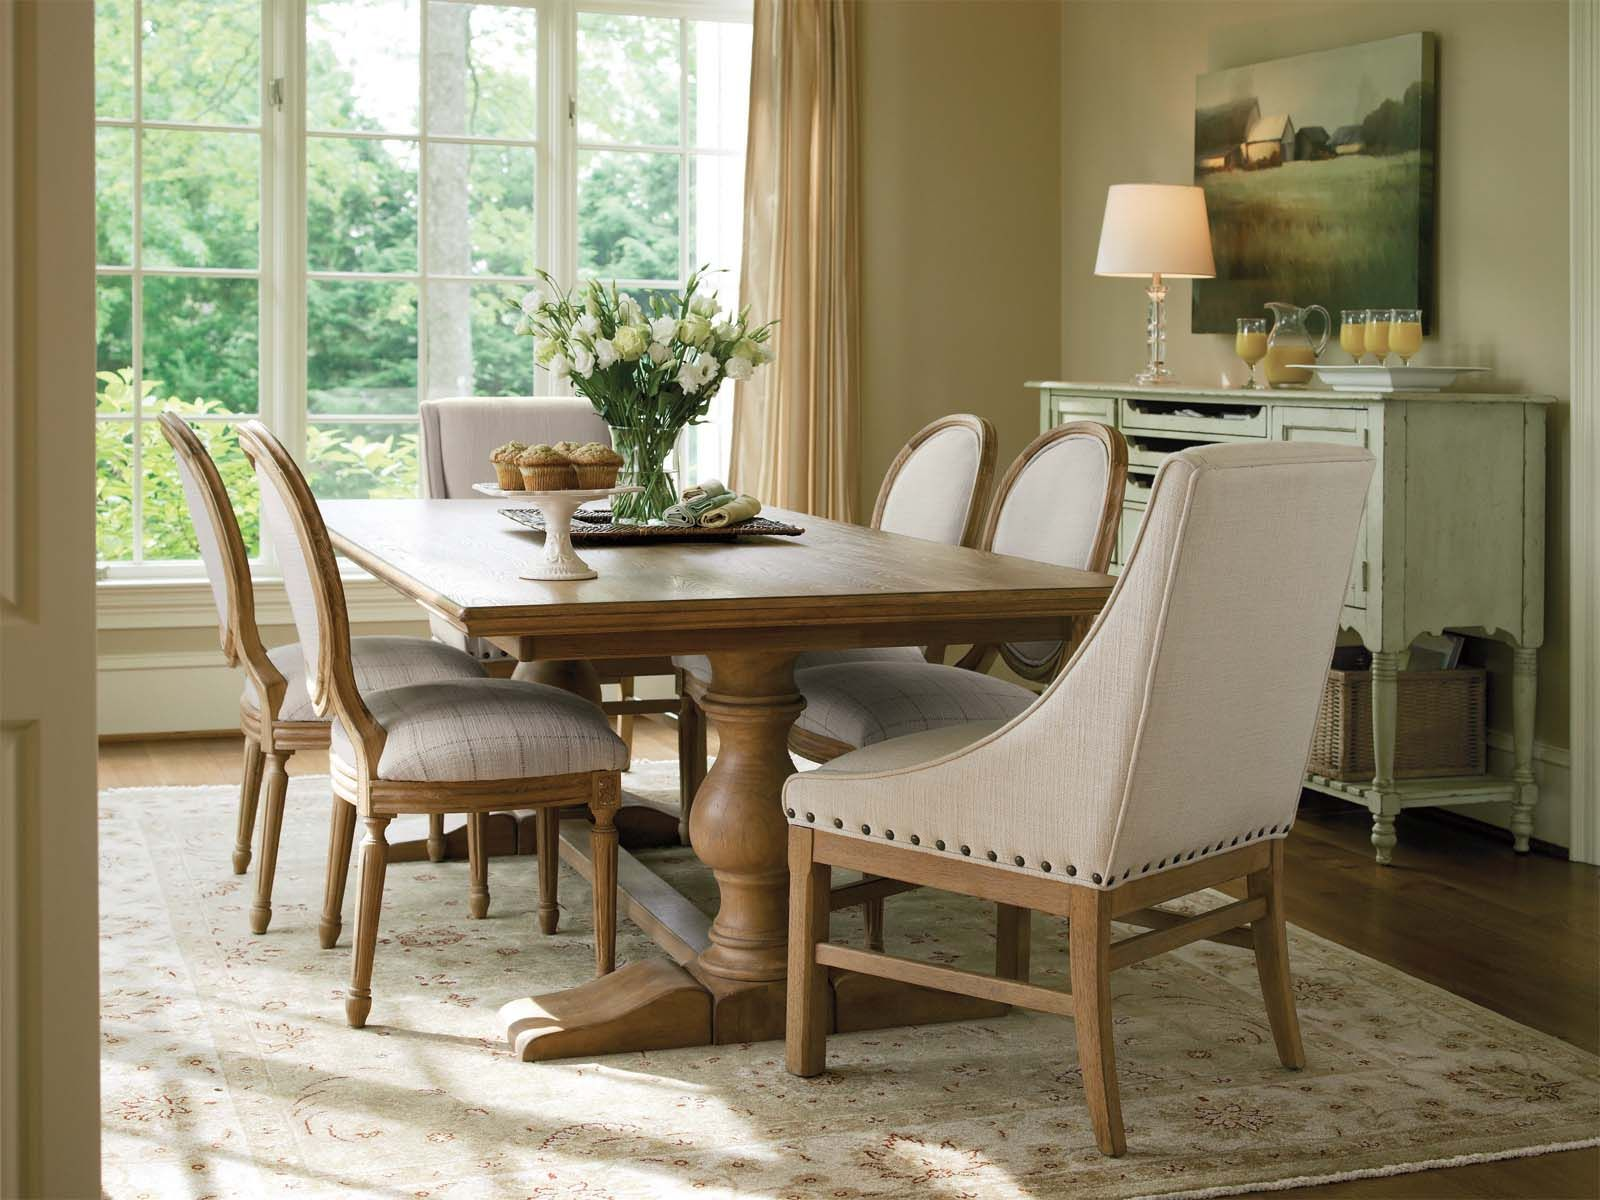 dining room improvisation using charming farmhouse table | in